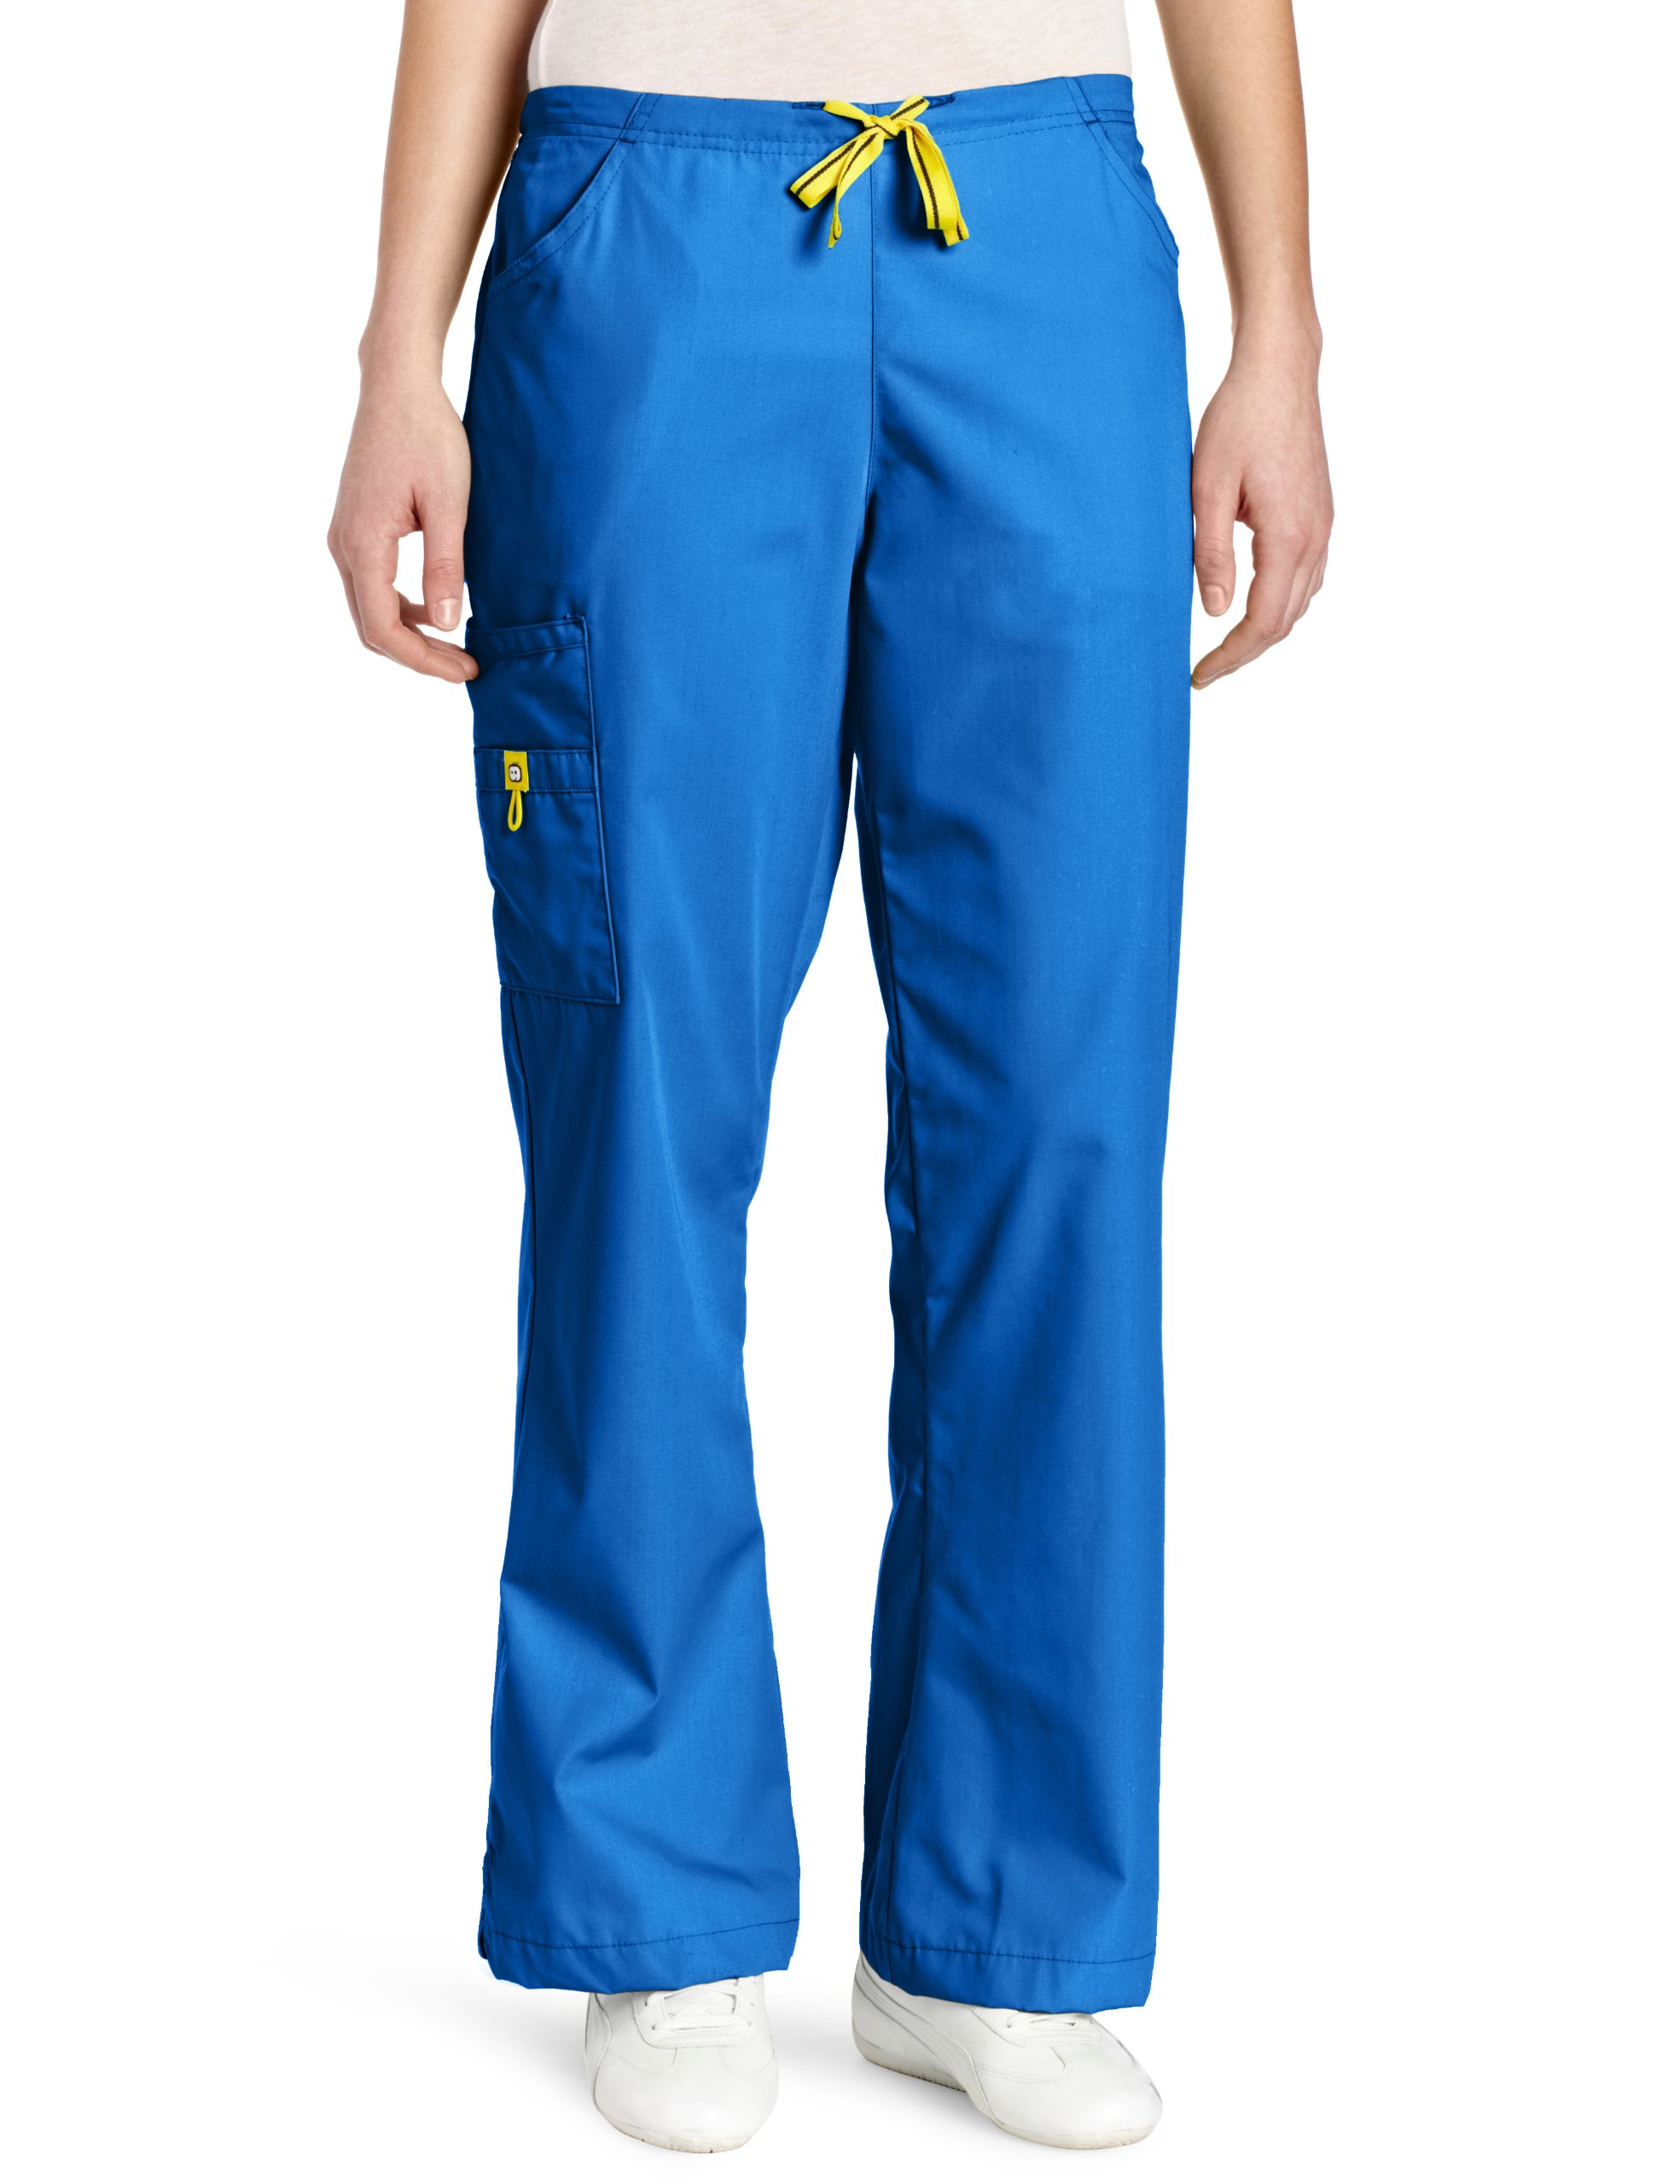 WonderWink Women's Scrubs Romeo 6 Pocket Flare Leg Pant, Royal, Medium